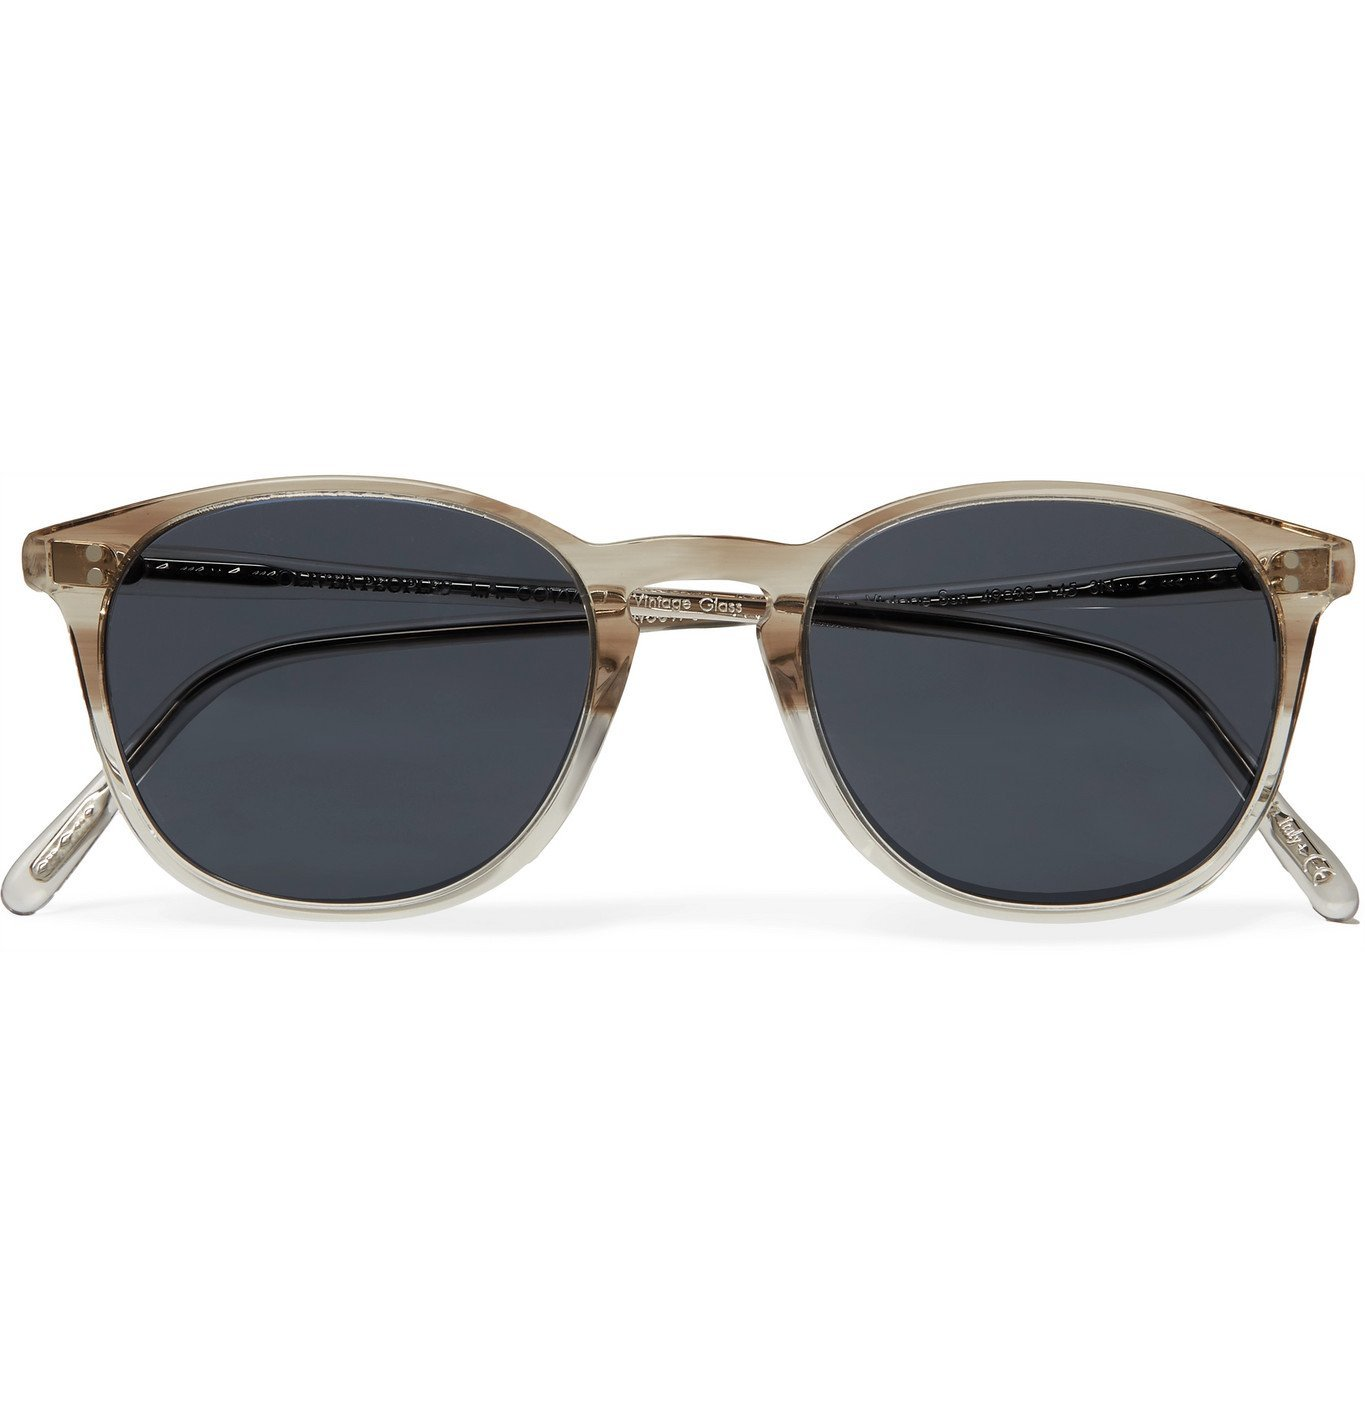 Photo: OLIVER PEOPLES - Finley Vintage Round-Frame Acetate Sunglasses - Gray